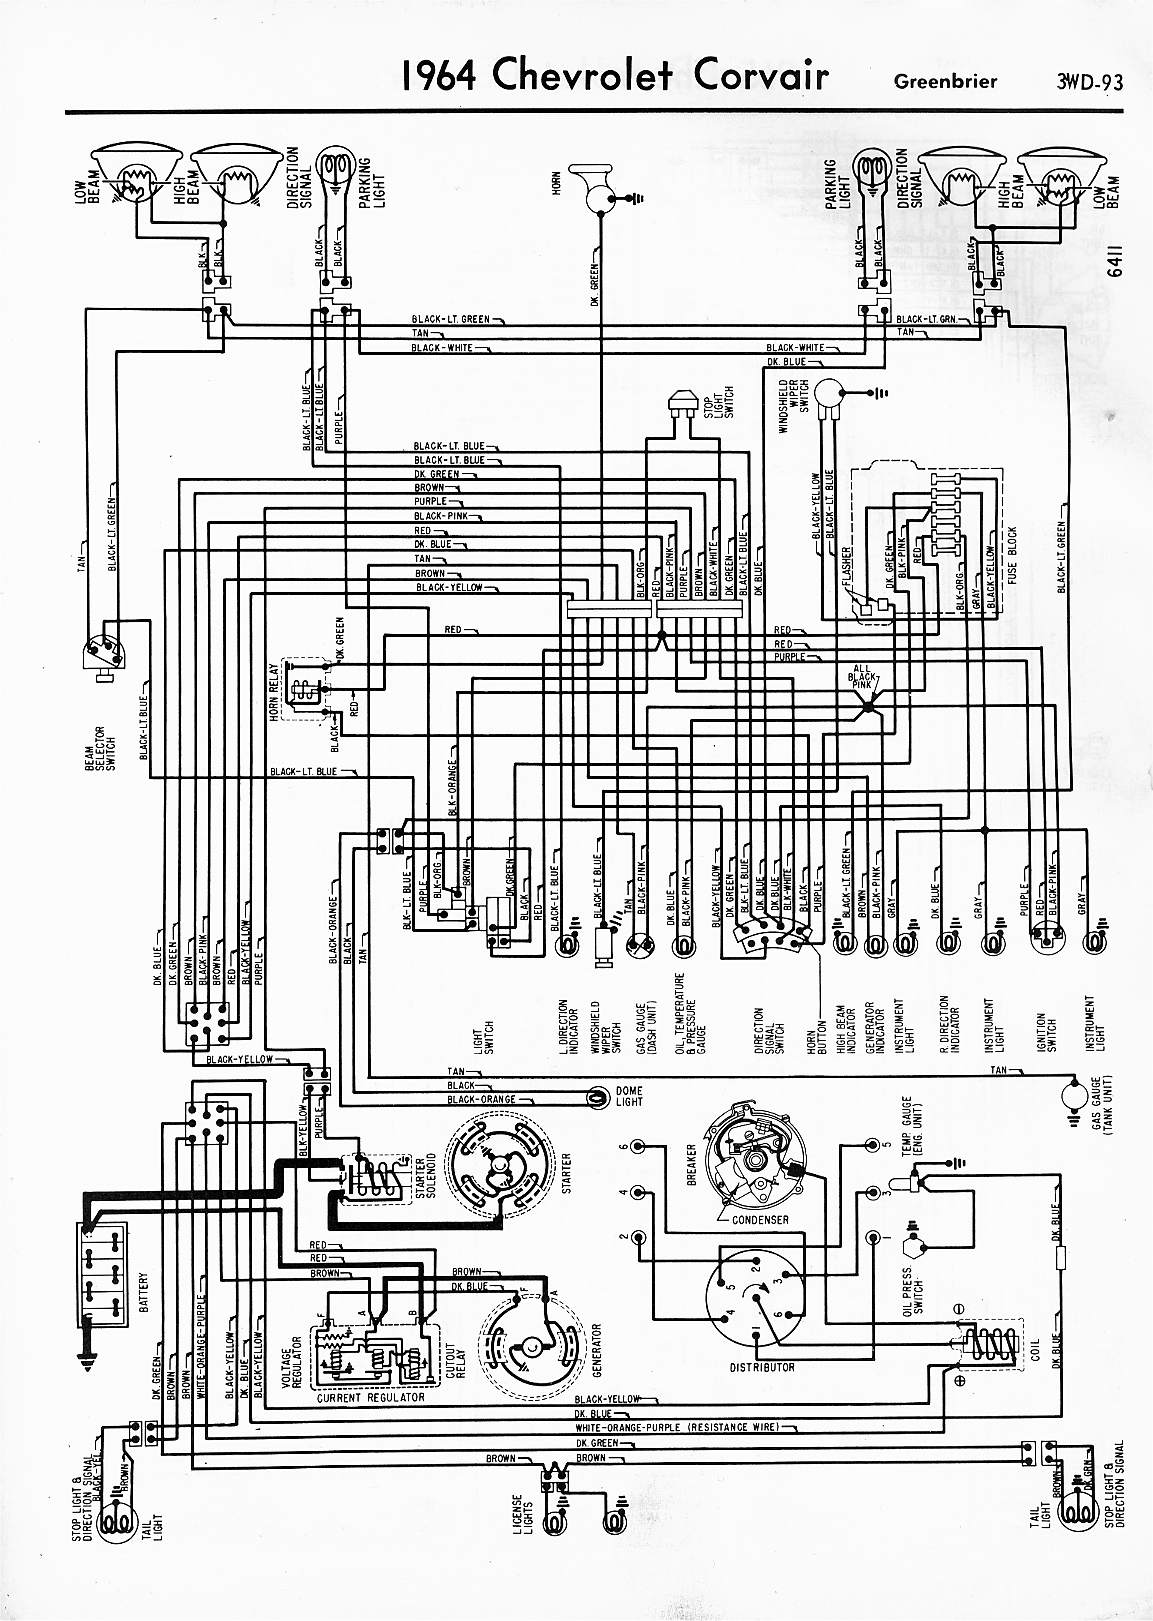 D Chevy Nova Ls Swap moreover Wiring Diagram in addition Best Chevy C Wiring Diagram Electrical Circuit For Impala Wiring Diagram in addition Frontsuspensionphotos together with Pic. on 63 chevy c10 wiring diagram